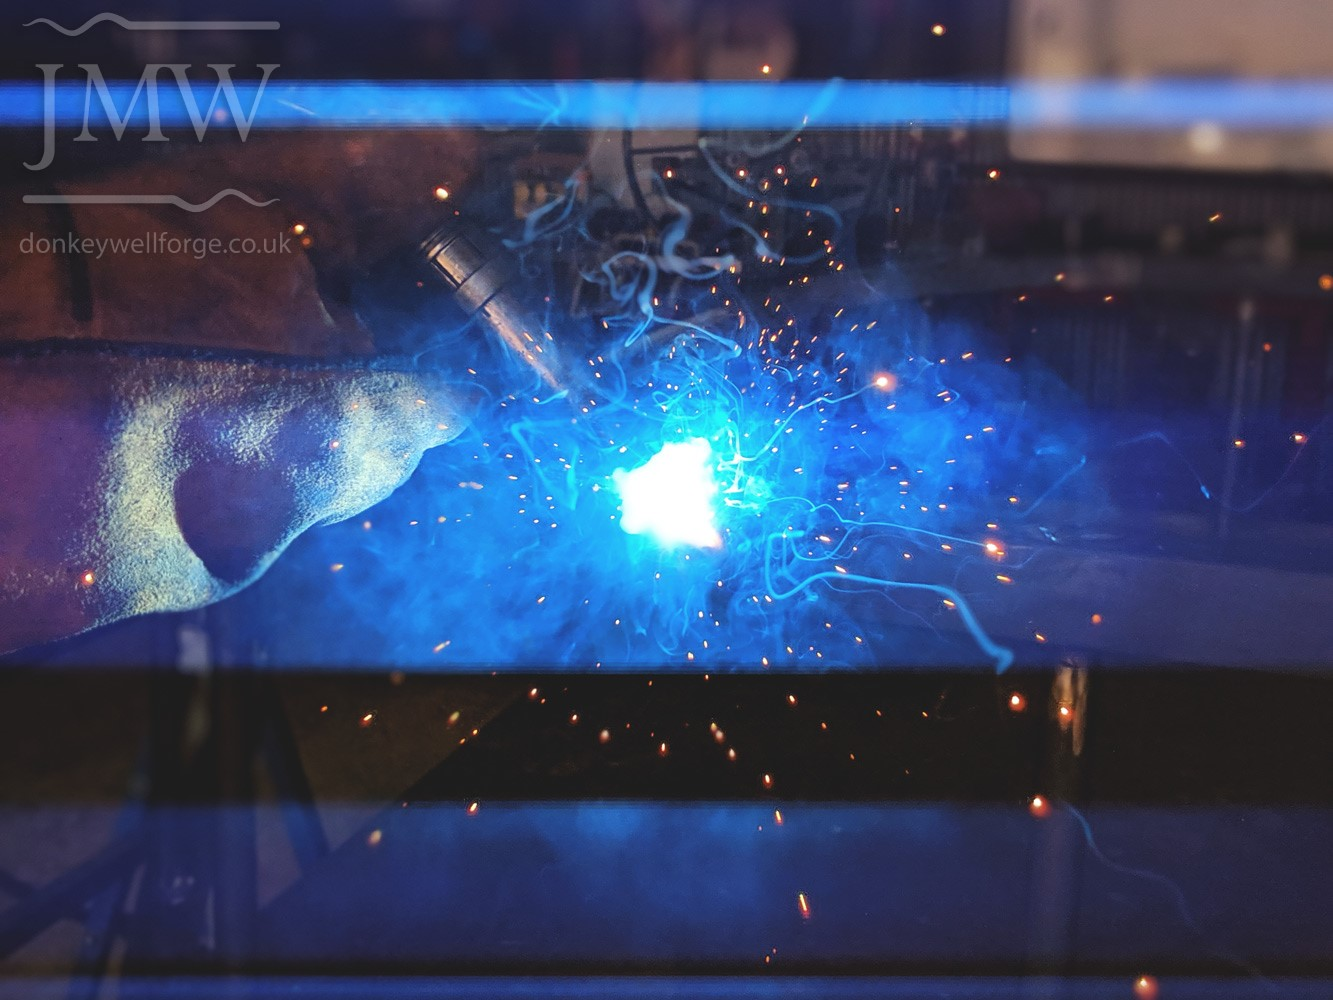 blacksmiths-gloucestershire-welding-fabrication